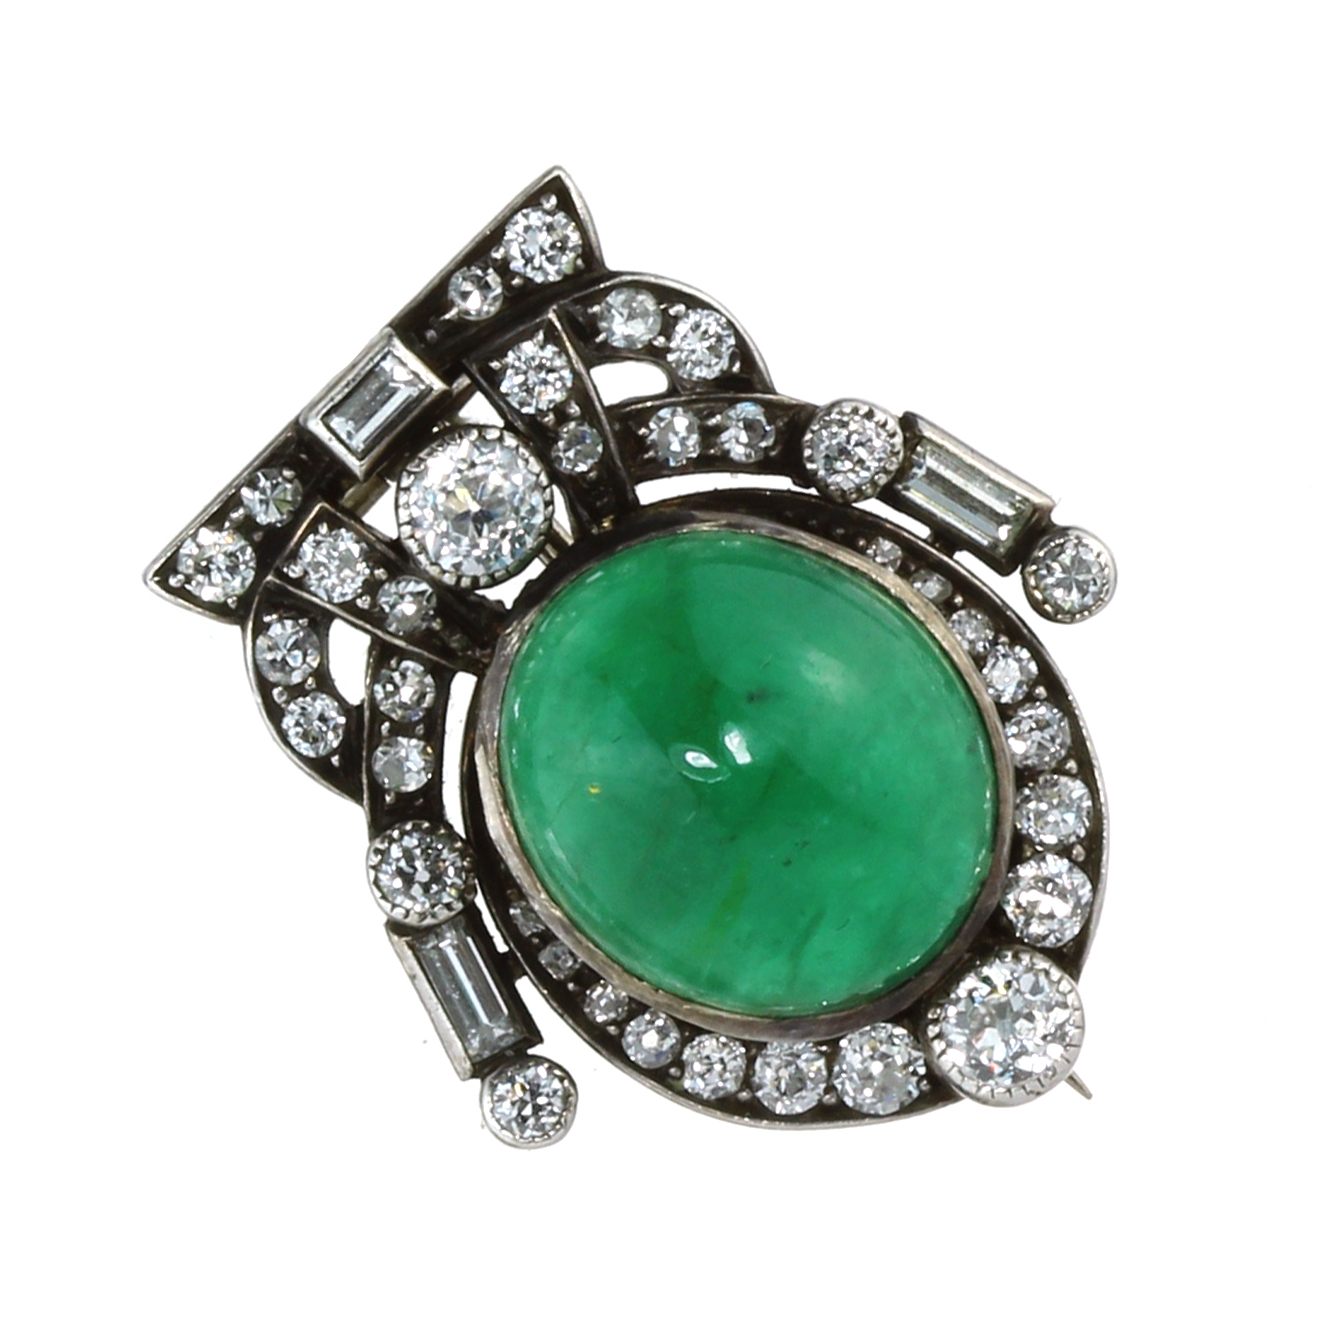 AN ANTIQUE EMERALD AND DIAMOND BROOCH in yellow and white gold, set with an oval cabochon emerald of